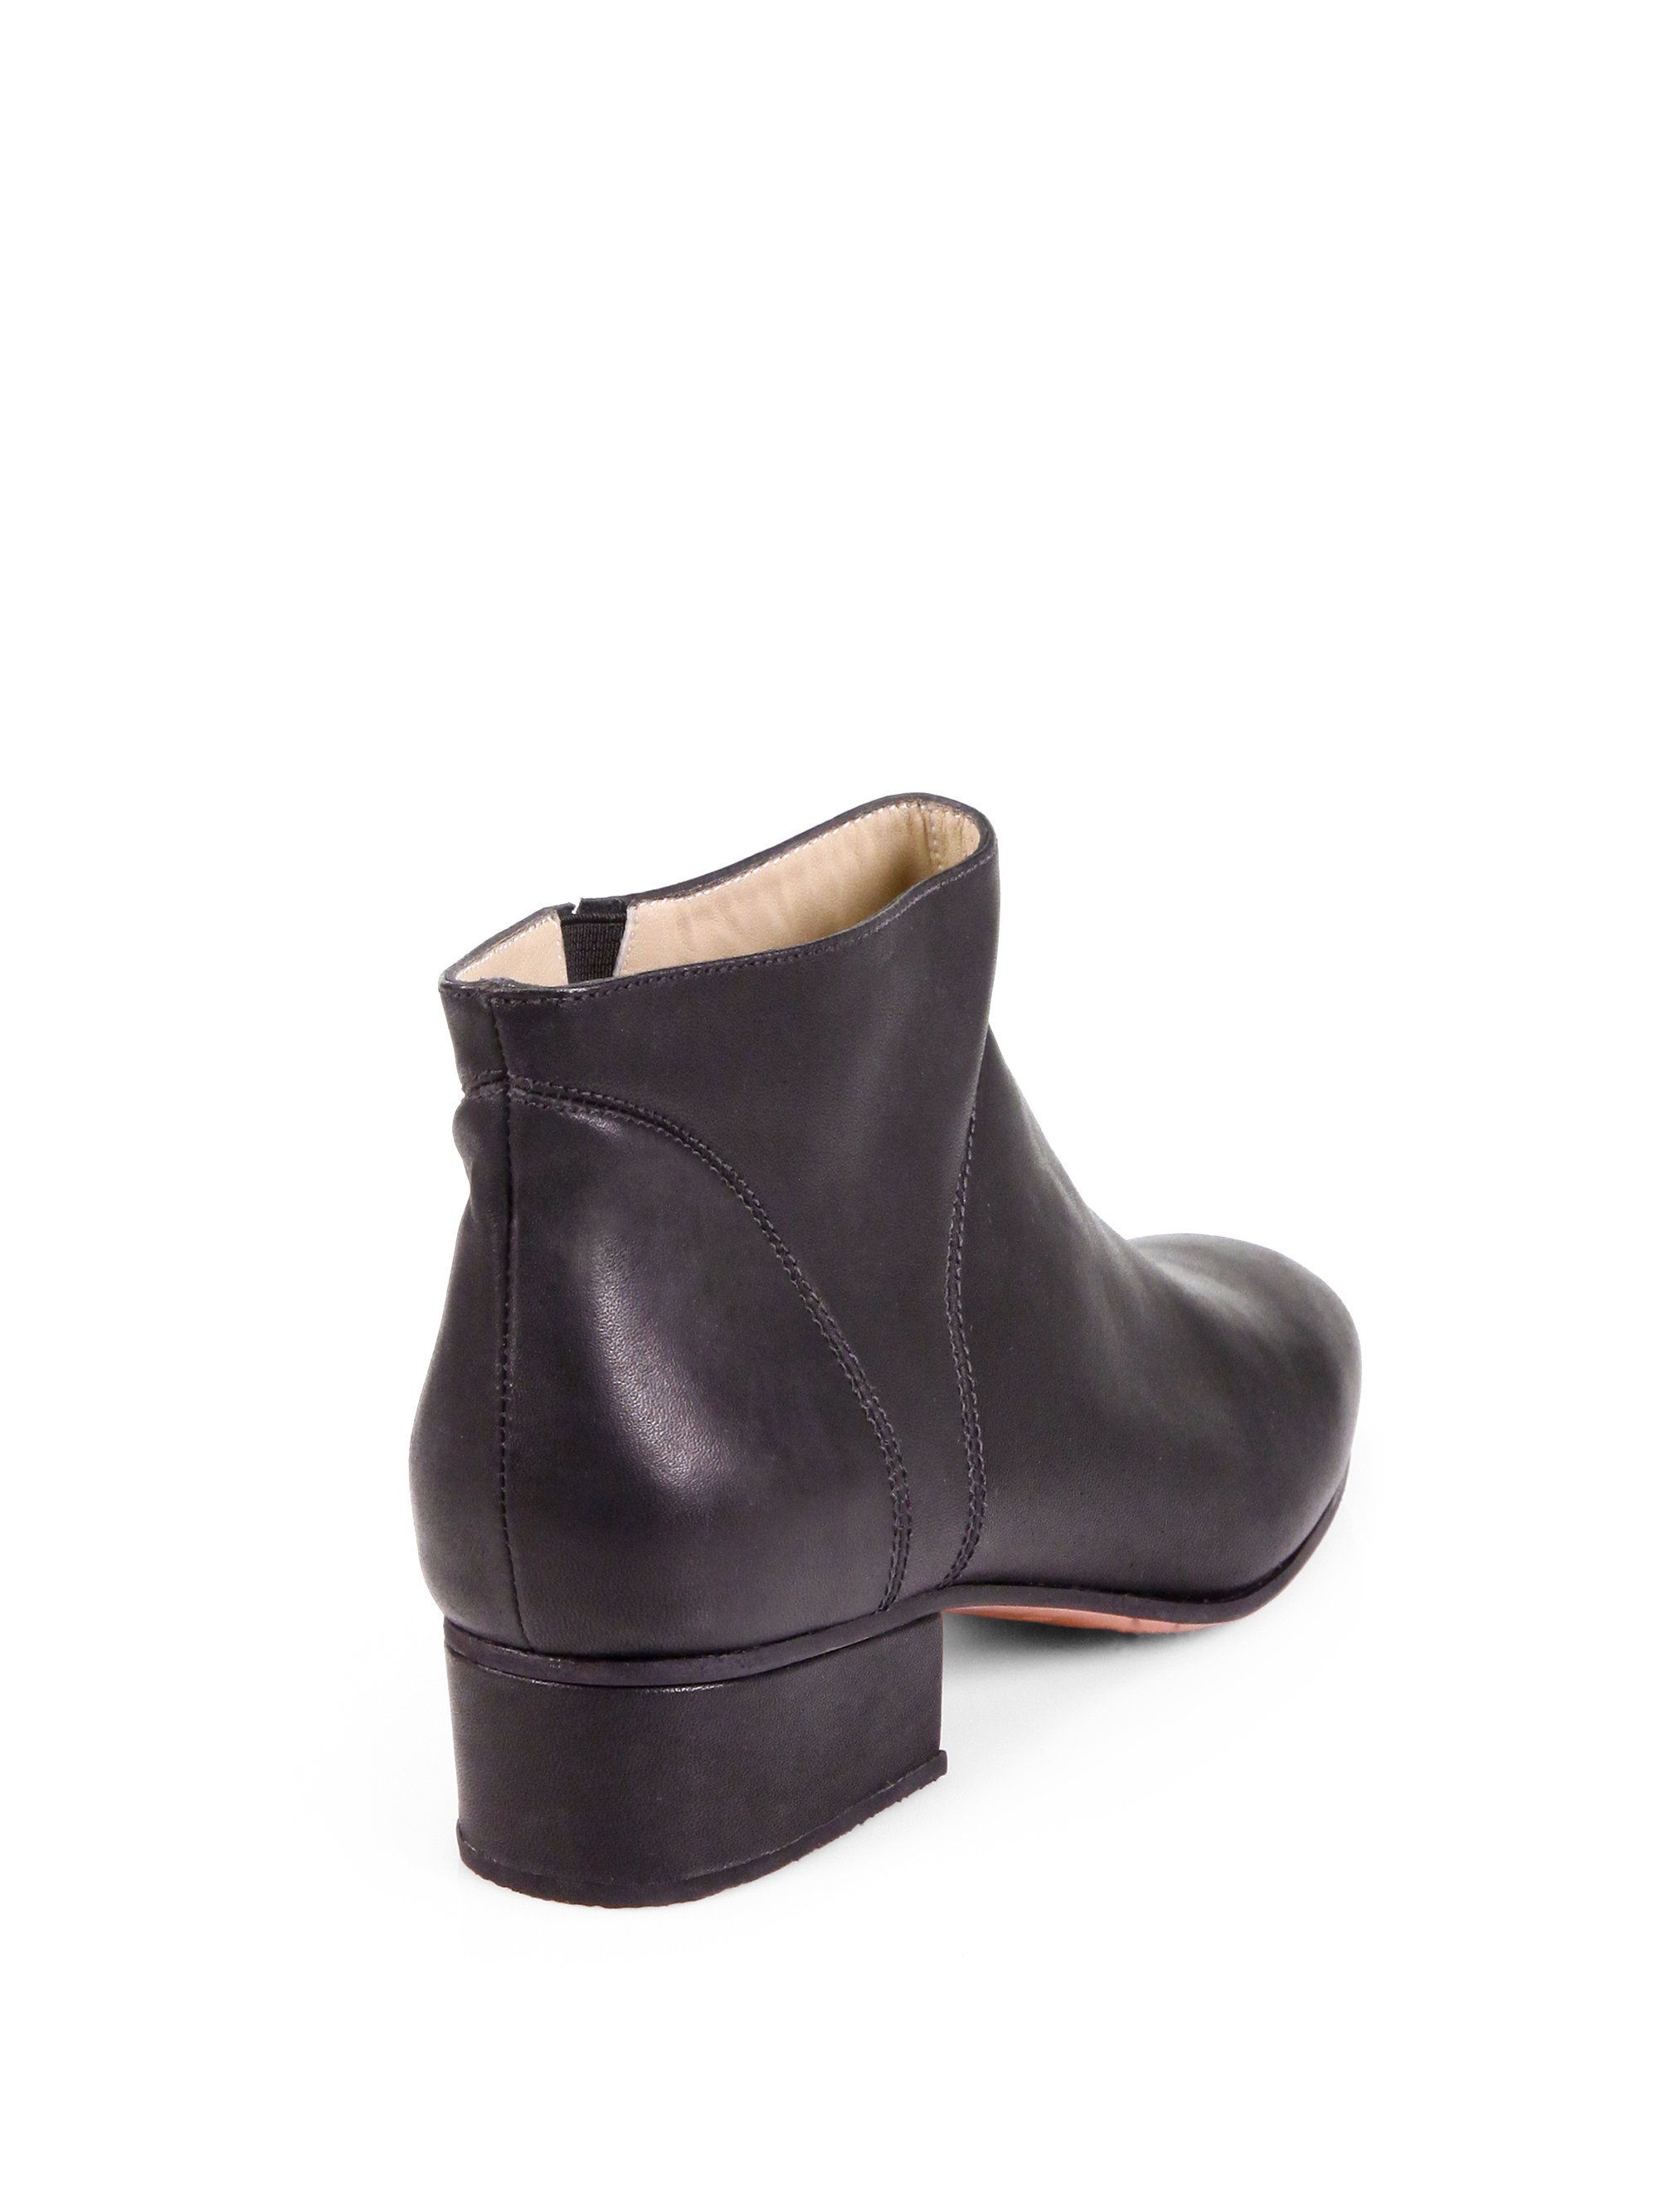 Rachel Comey Round-Toe Ankle Boots sale under $60 outlet big discount many kinds of online shopping online with mastercard cheap very cheap wkhDpTS6OM